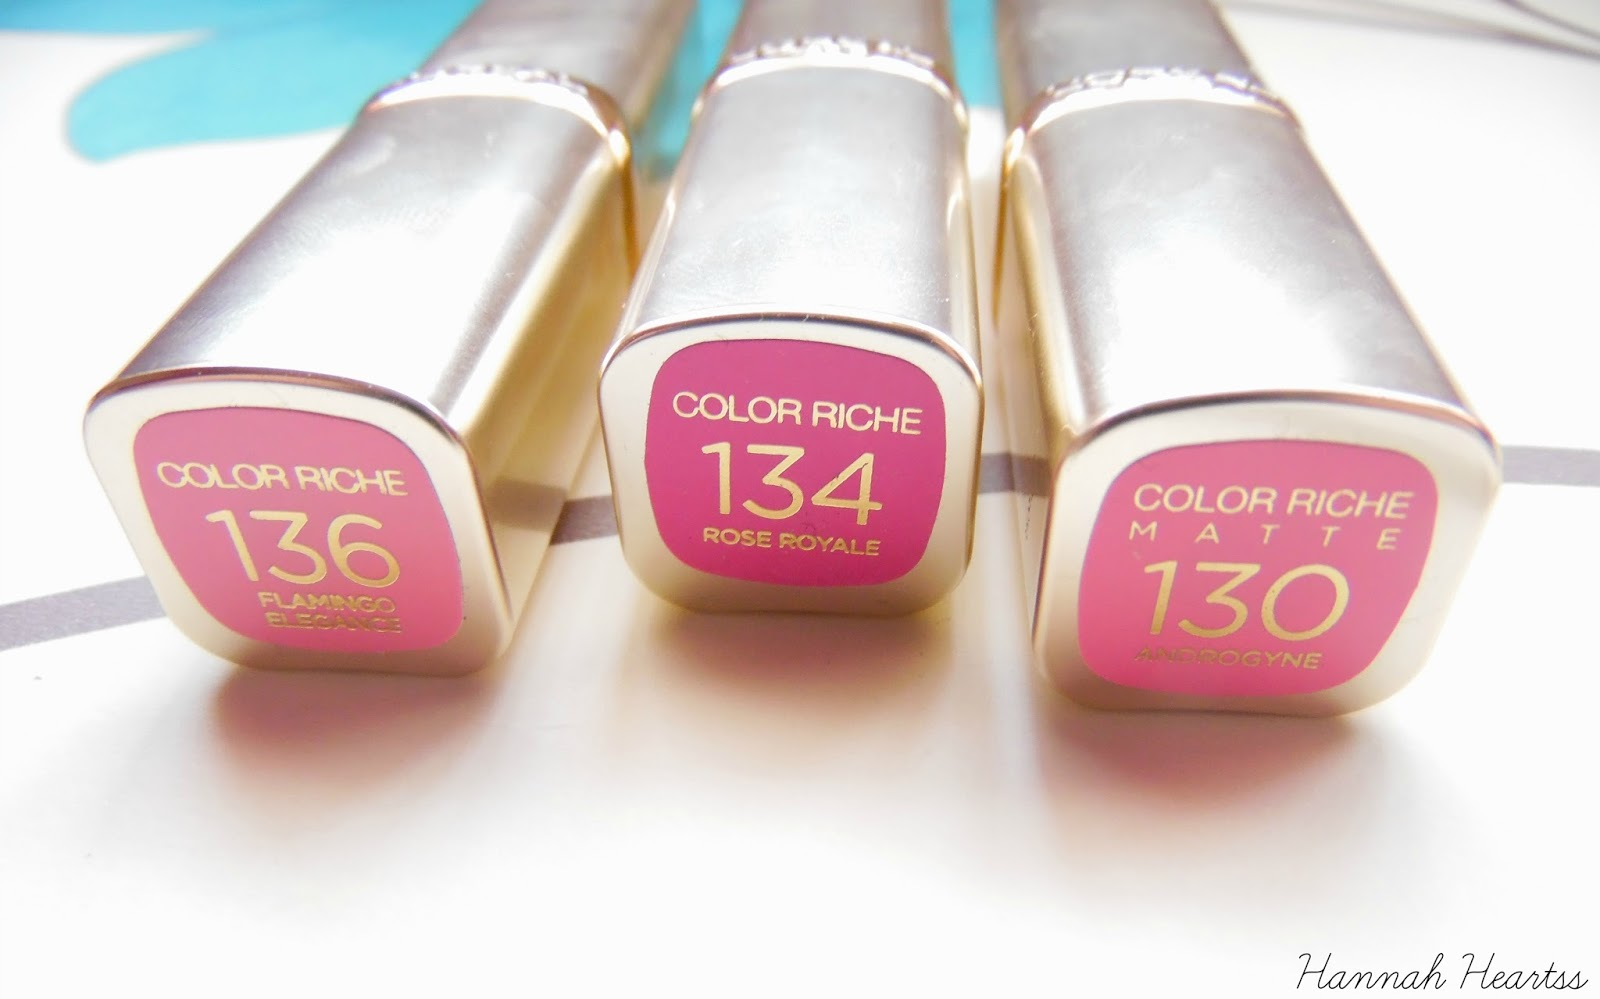 L'Oreal Color Riche Lipsticks